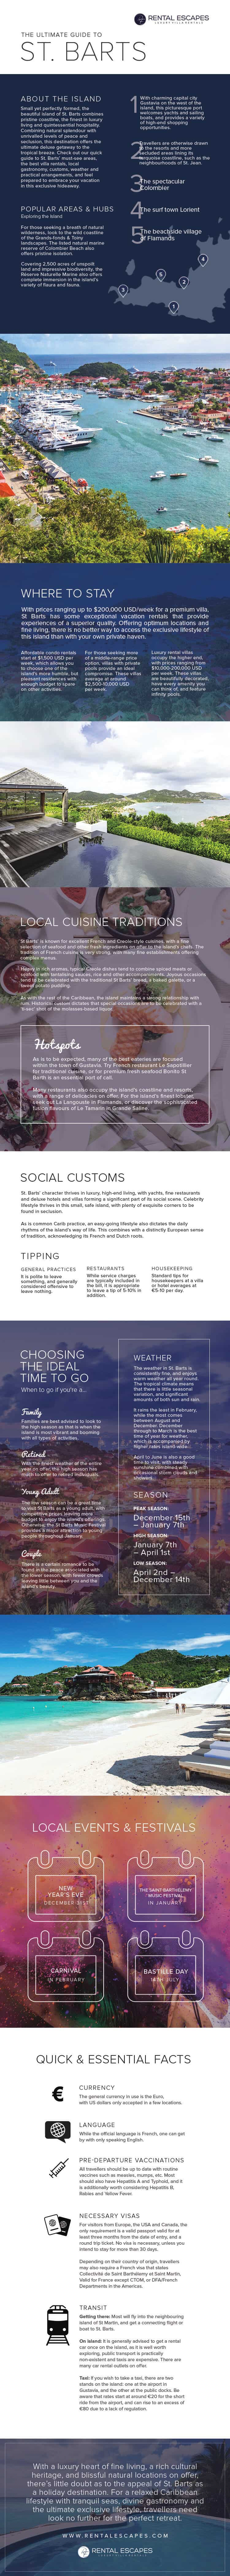 Ultimate Guide to St Barts Infographic